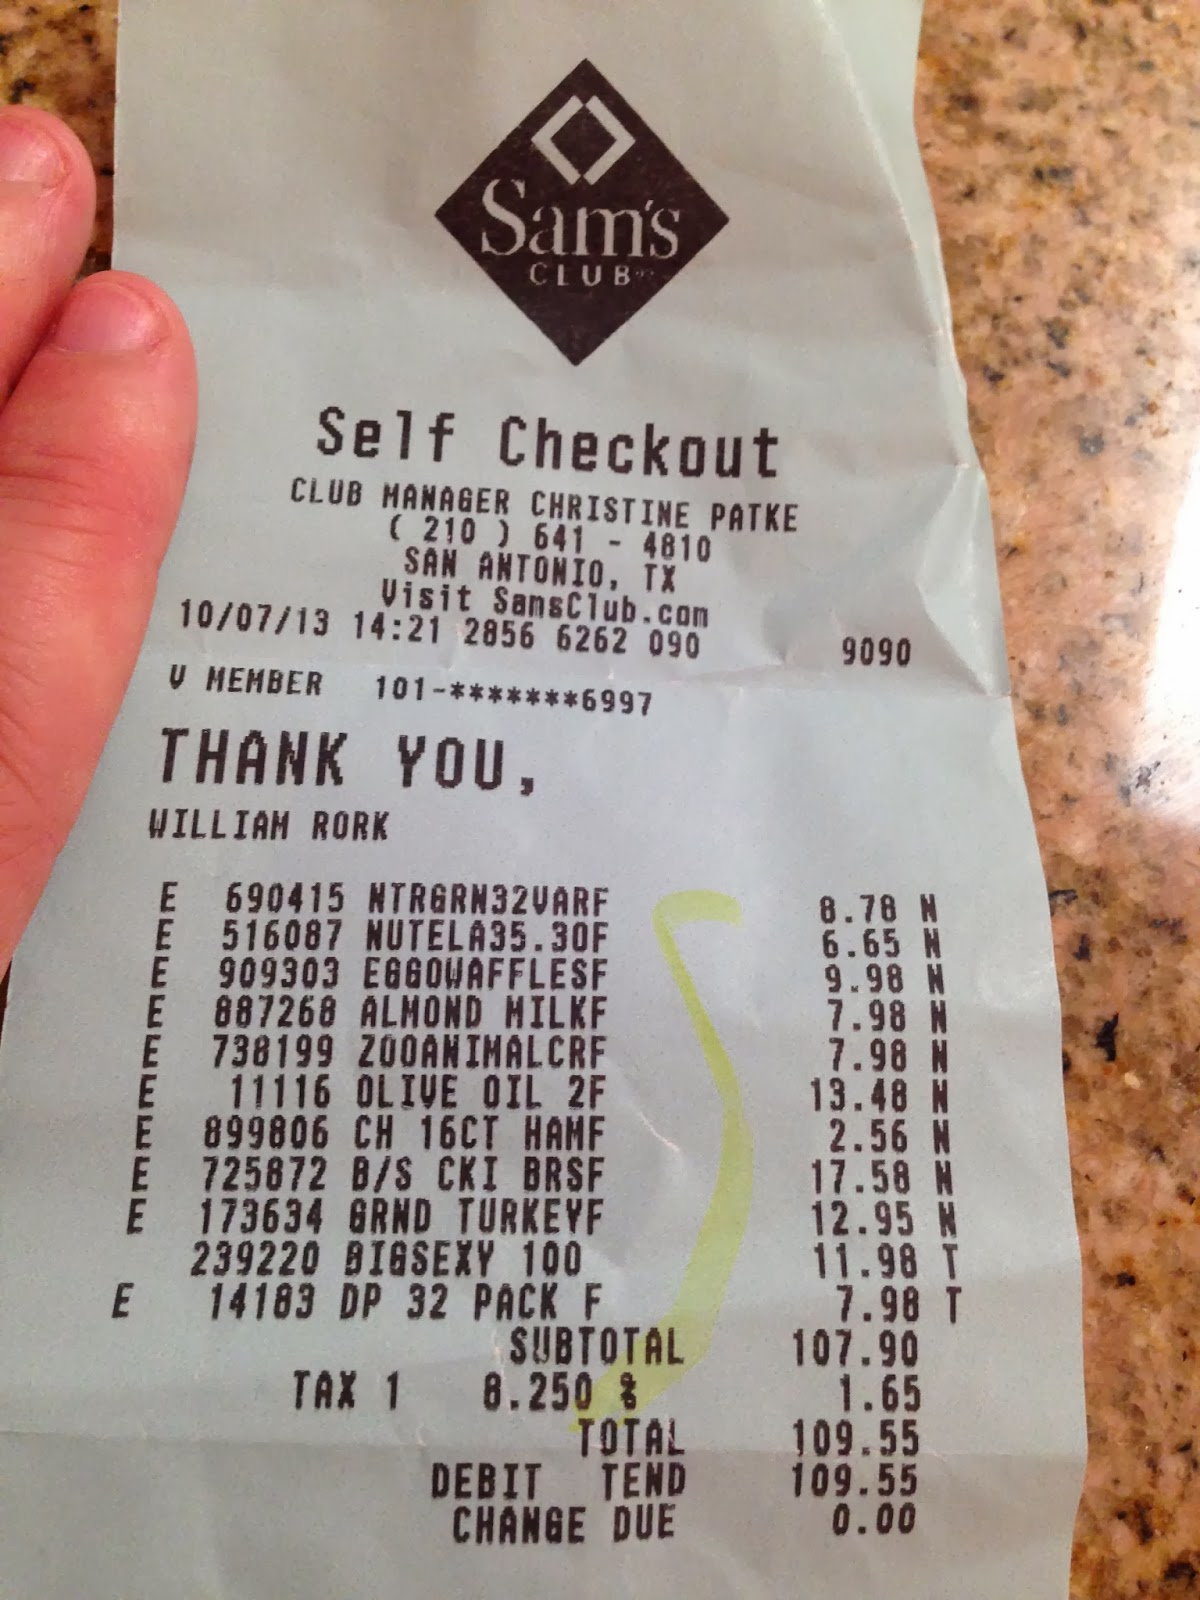 Sam s club credit card payment - Sam S Club 6653 Receipt